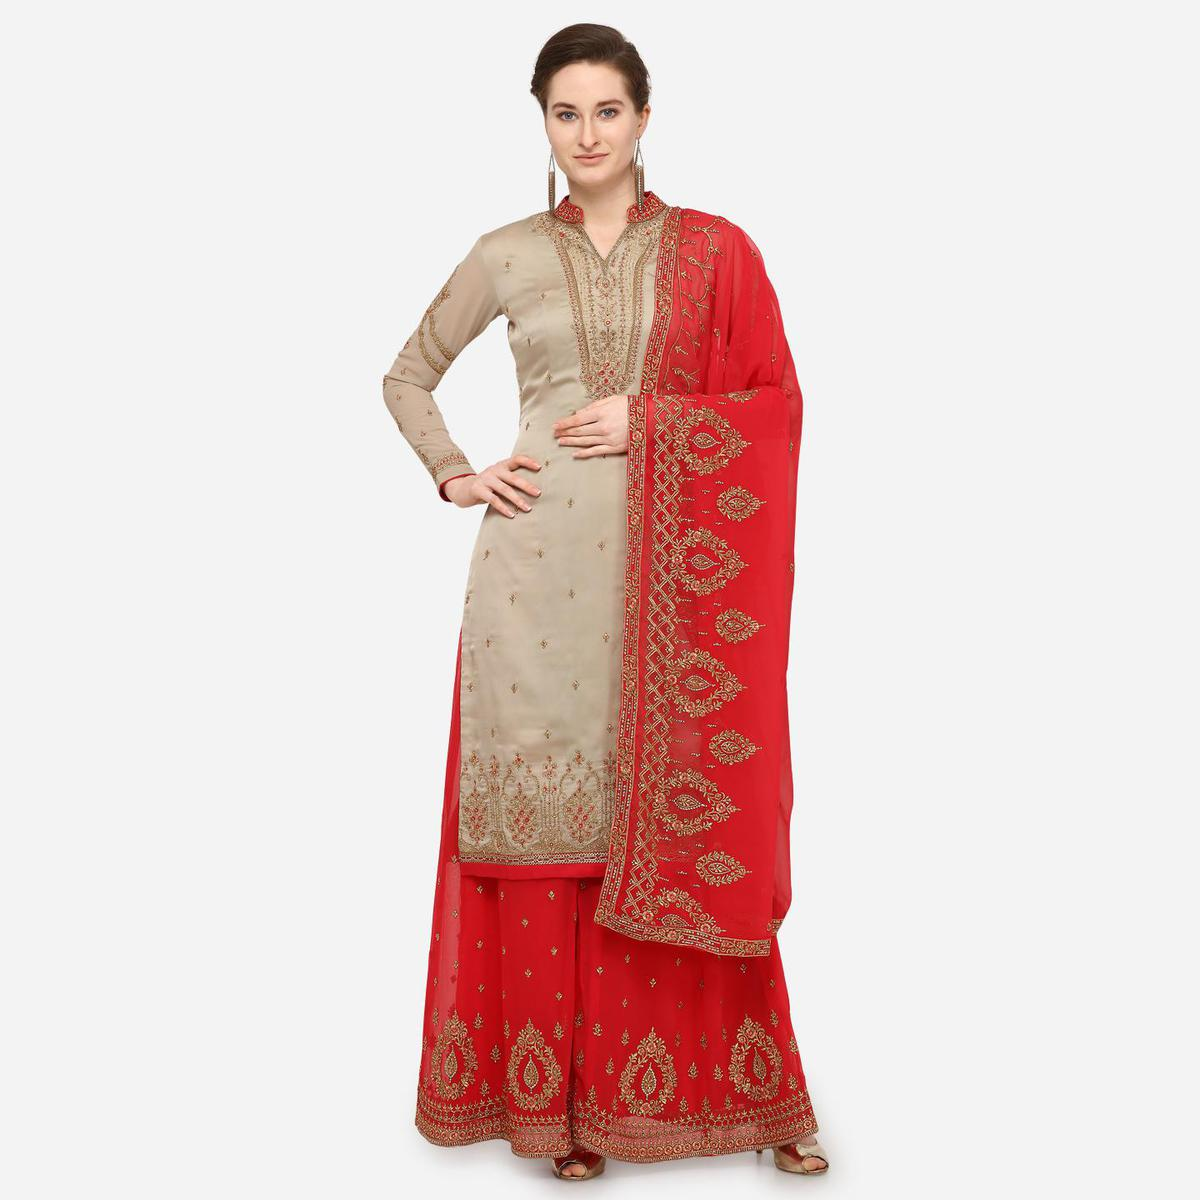 Stylee Lifestyle - Grey Colored Party Wear Embroidered Satin Sharara Suit